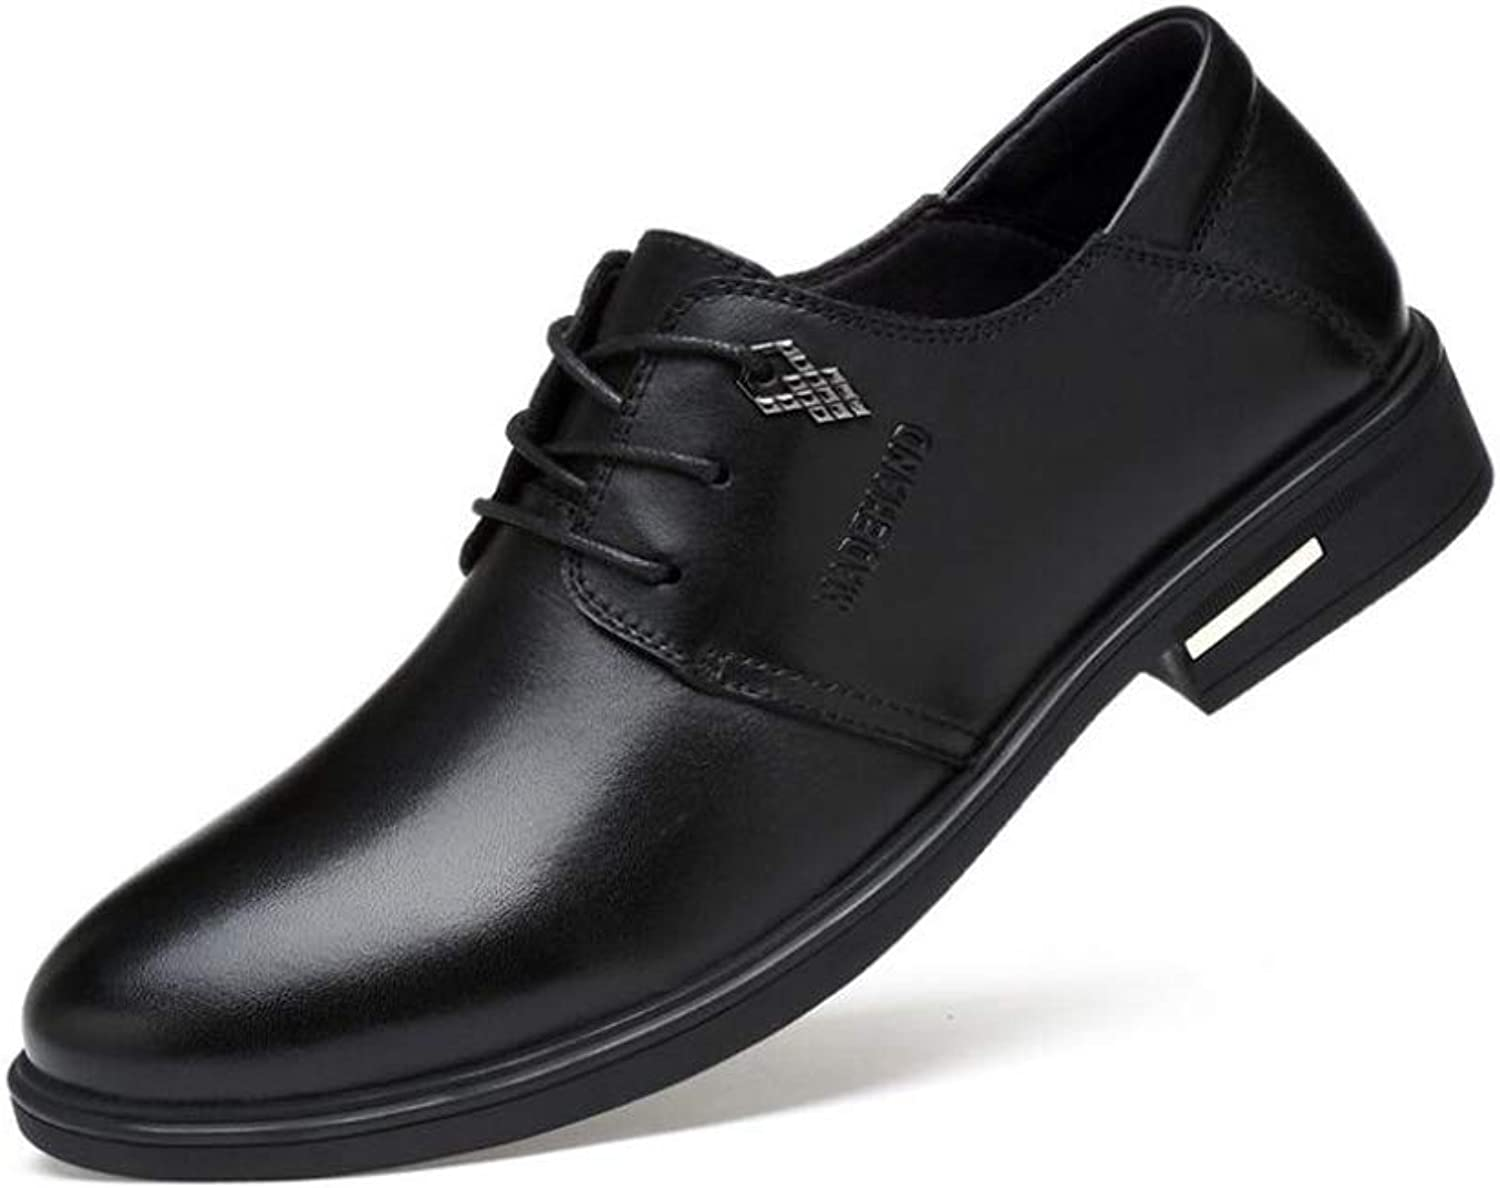 Spring Fall New Men's shoes, Pointed Toe Casual Business shoes ,Fashion Dress shoes, Lace up Formal shoes,Wedding Casual Party (color   Black, Size   44)